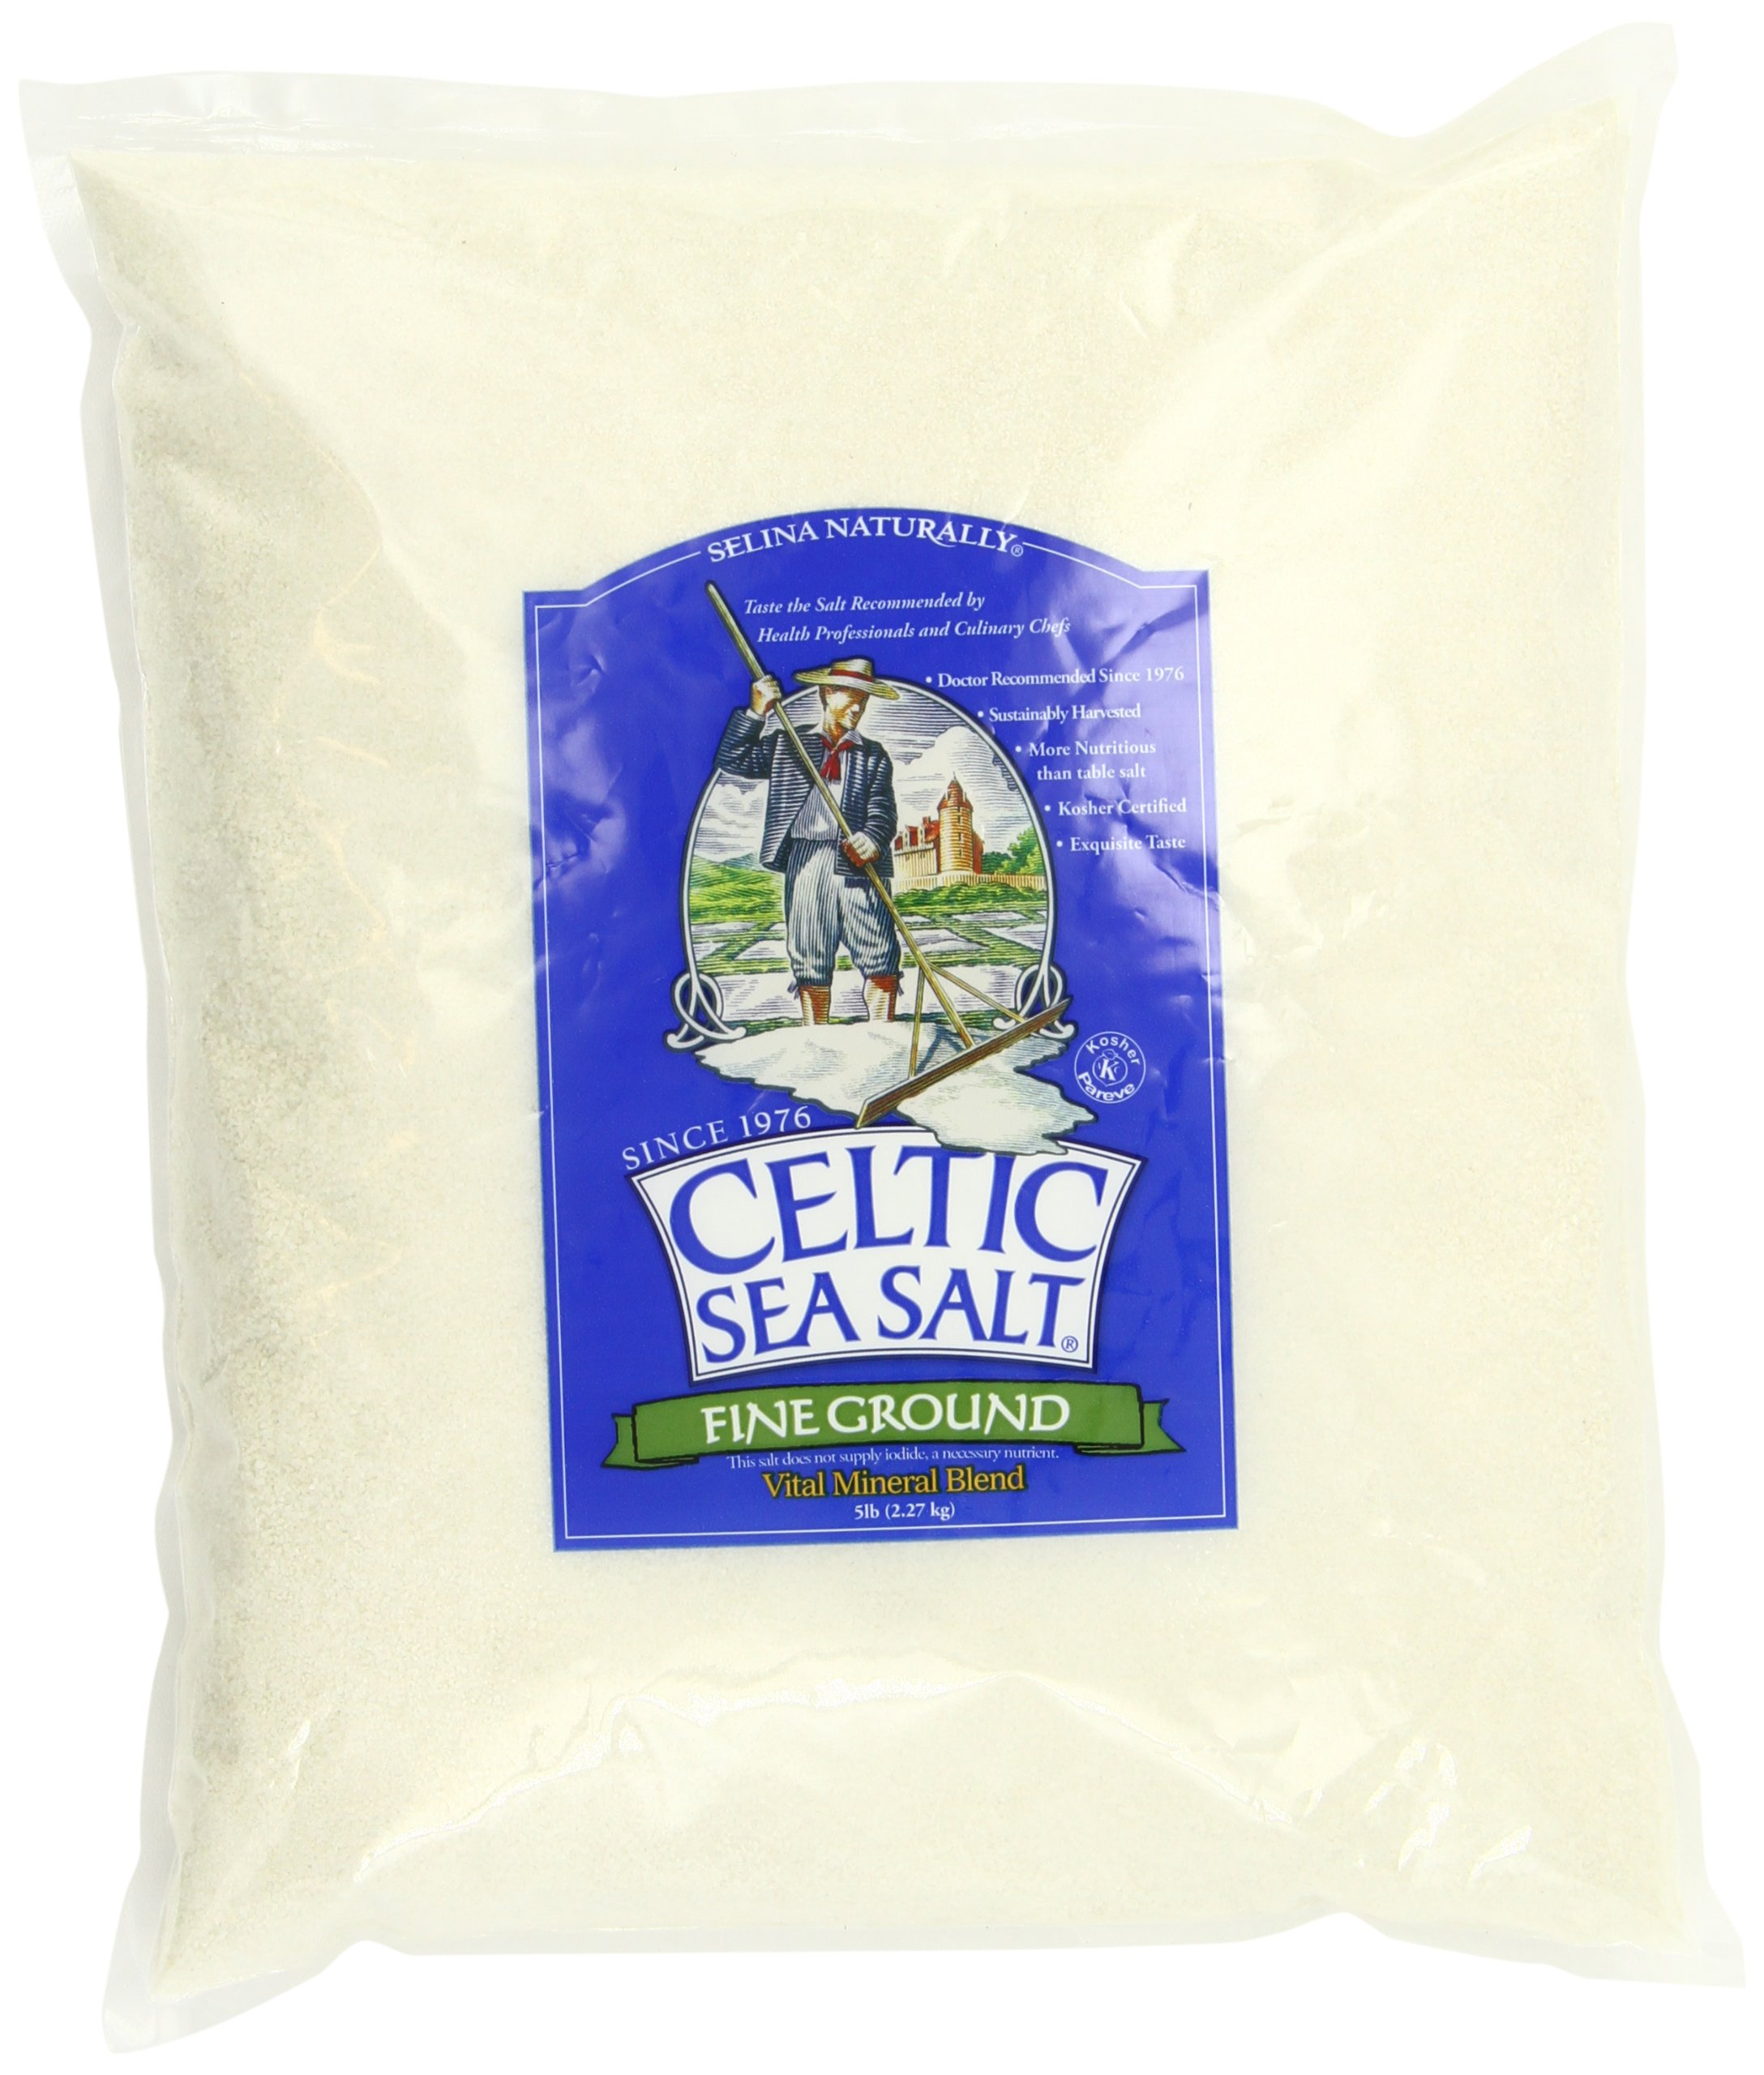 Fine Ground Celtic Sea Salt – (1) 5 Pound Bag of Nutritious, Classic Sea Salt, Great for Cooking, Baking, Pickling, Finishing and More, Pantry-Friendly, Gluten-Free, Kosher and Paleo-Friendly